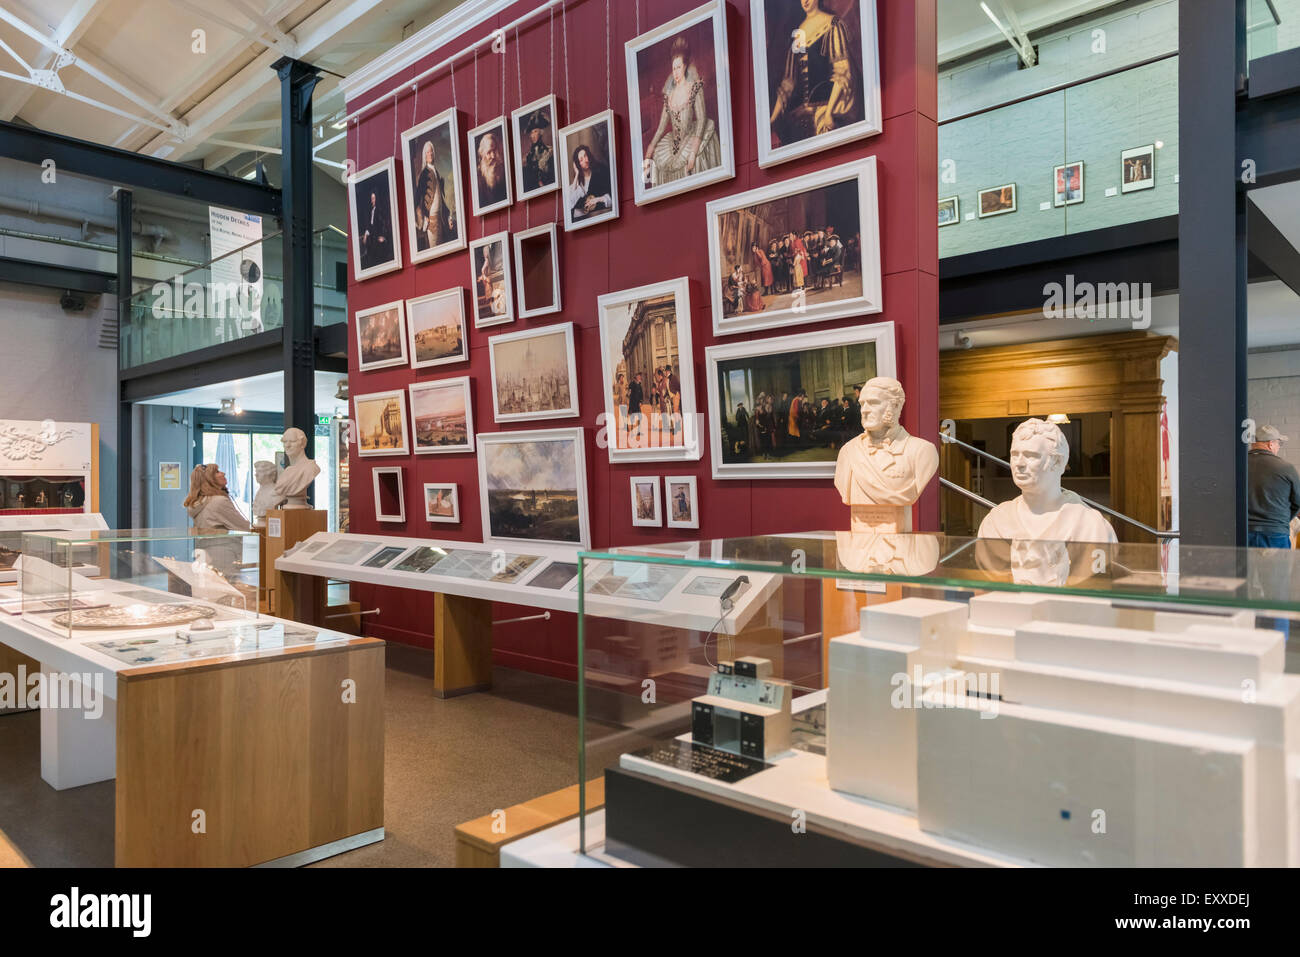 Inside Greenwich Visitors Center at the Old Royal Naval College, Greenwich, London, England, UK - Stock Image